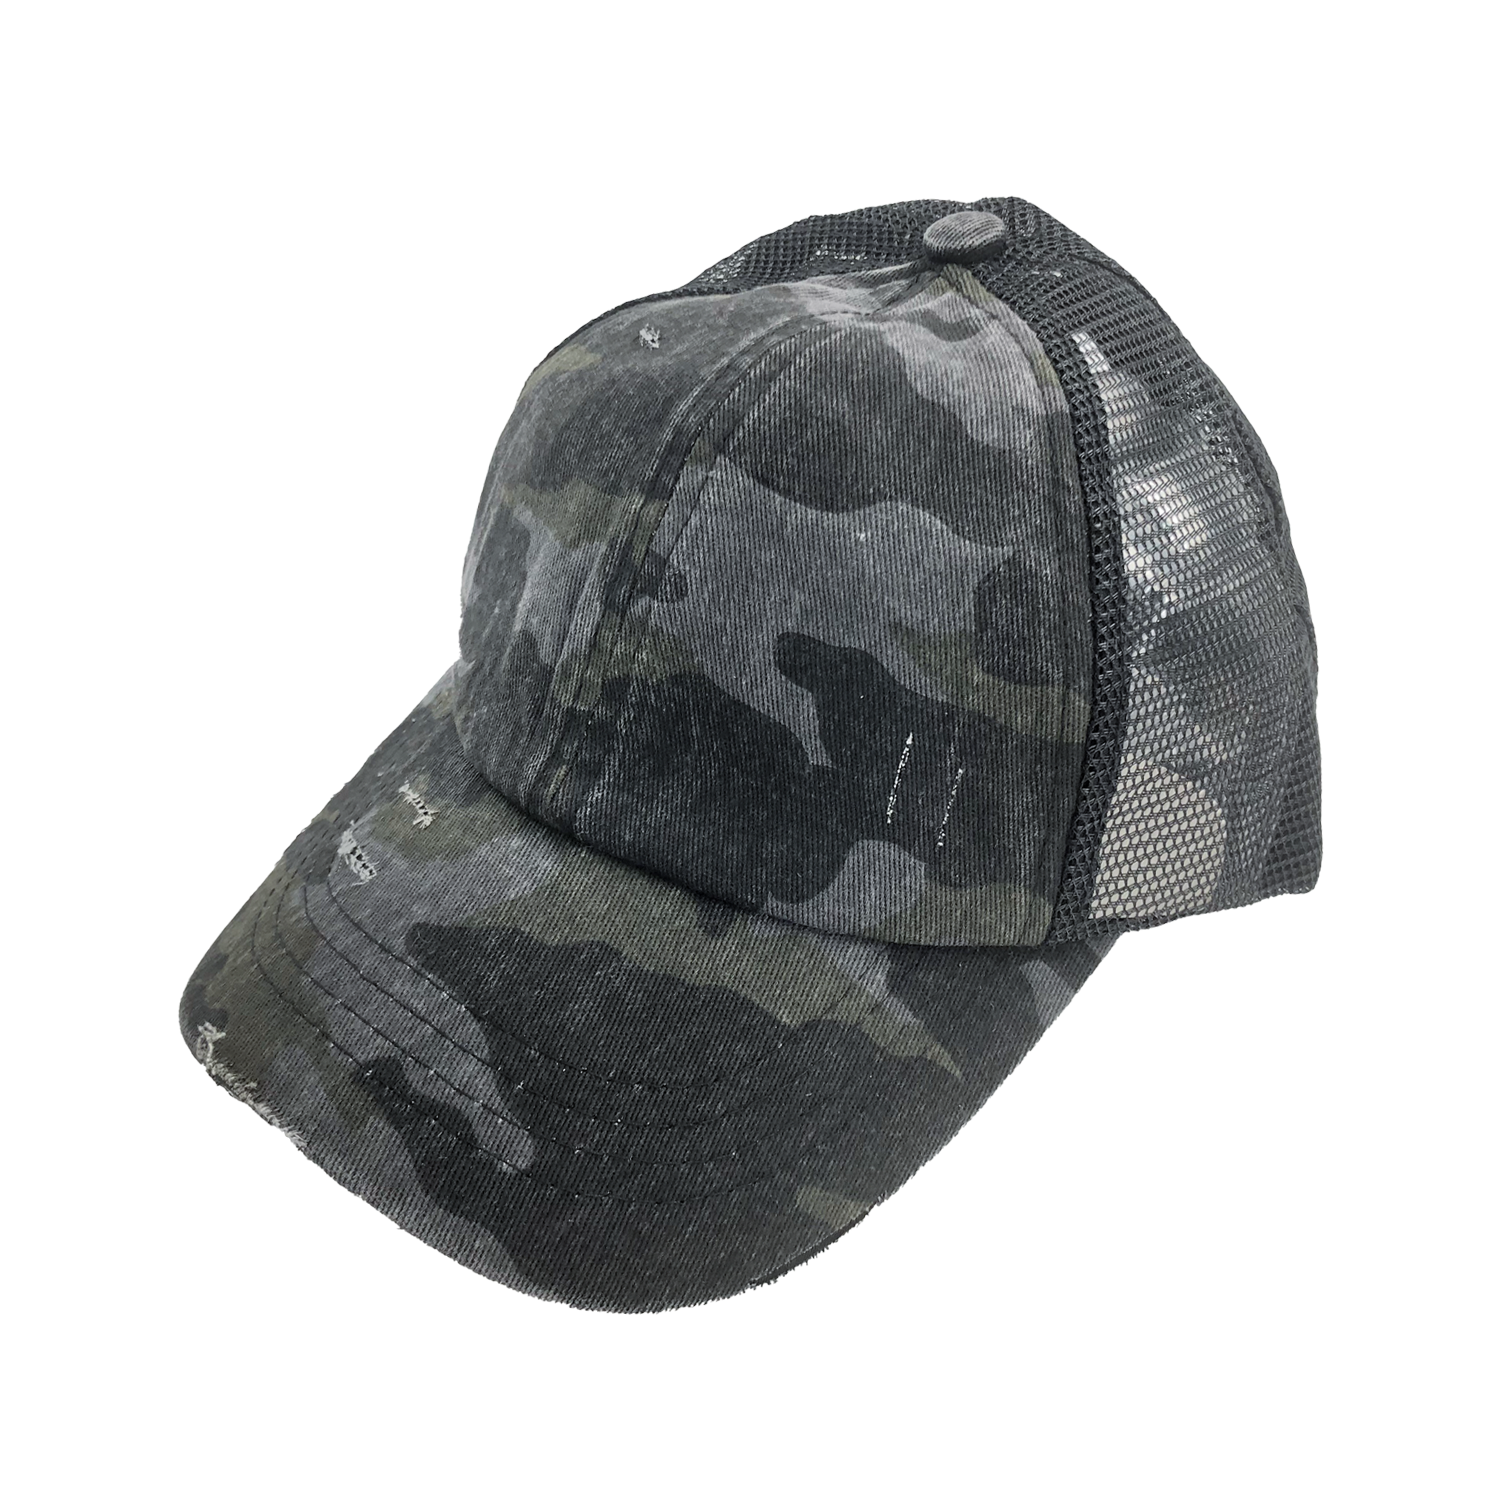 BT-783 C.C Criss Cross Pony Cap BLACK CAMO/BLACK